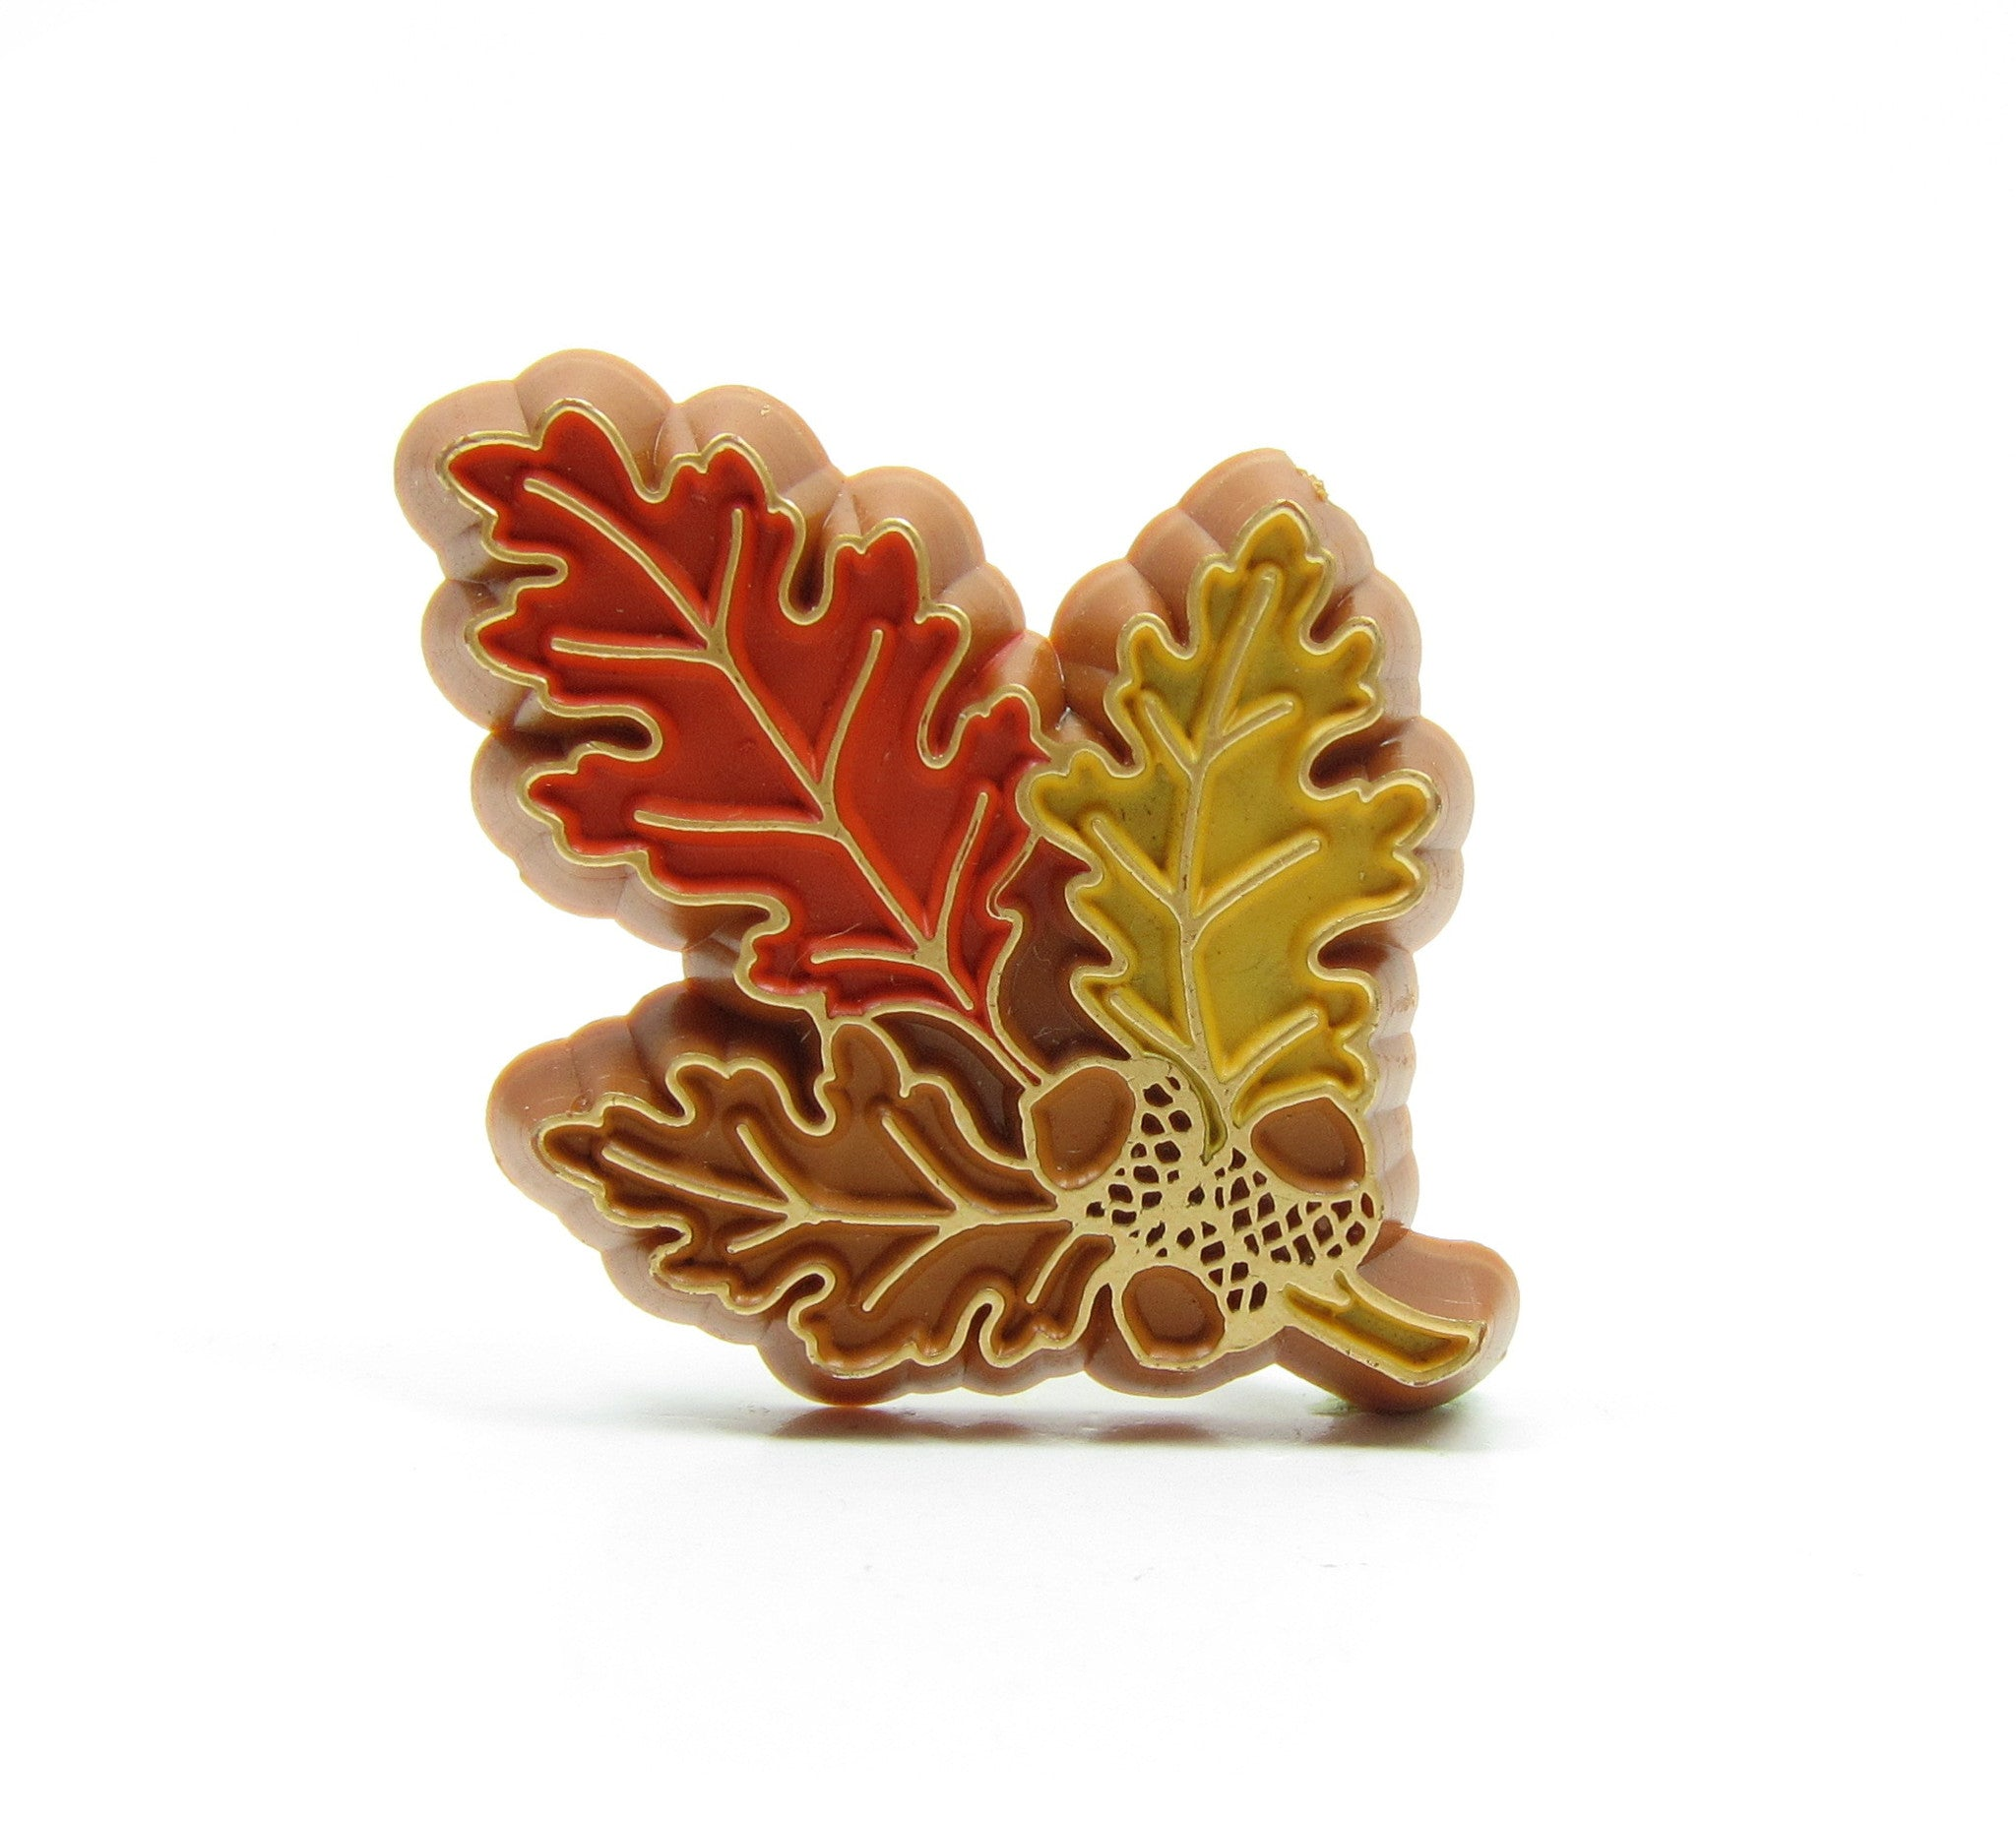 Hallmark oak leaves and acorns lapel pin